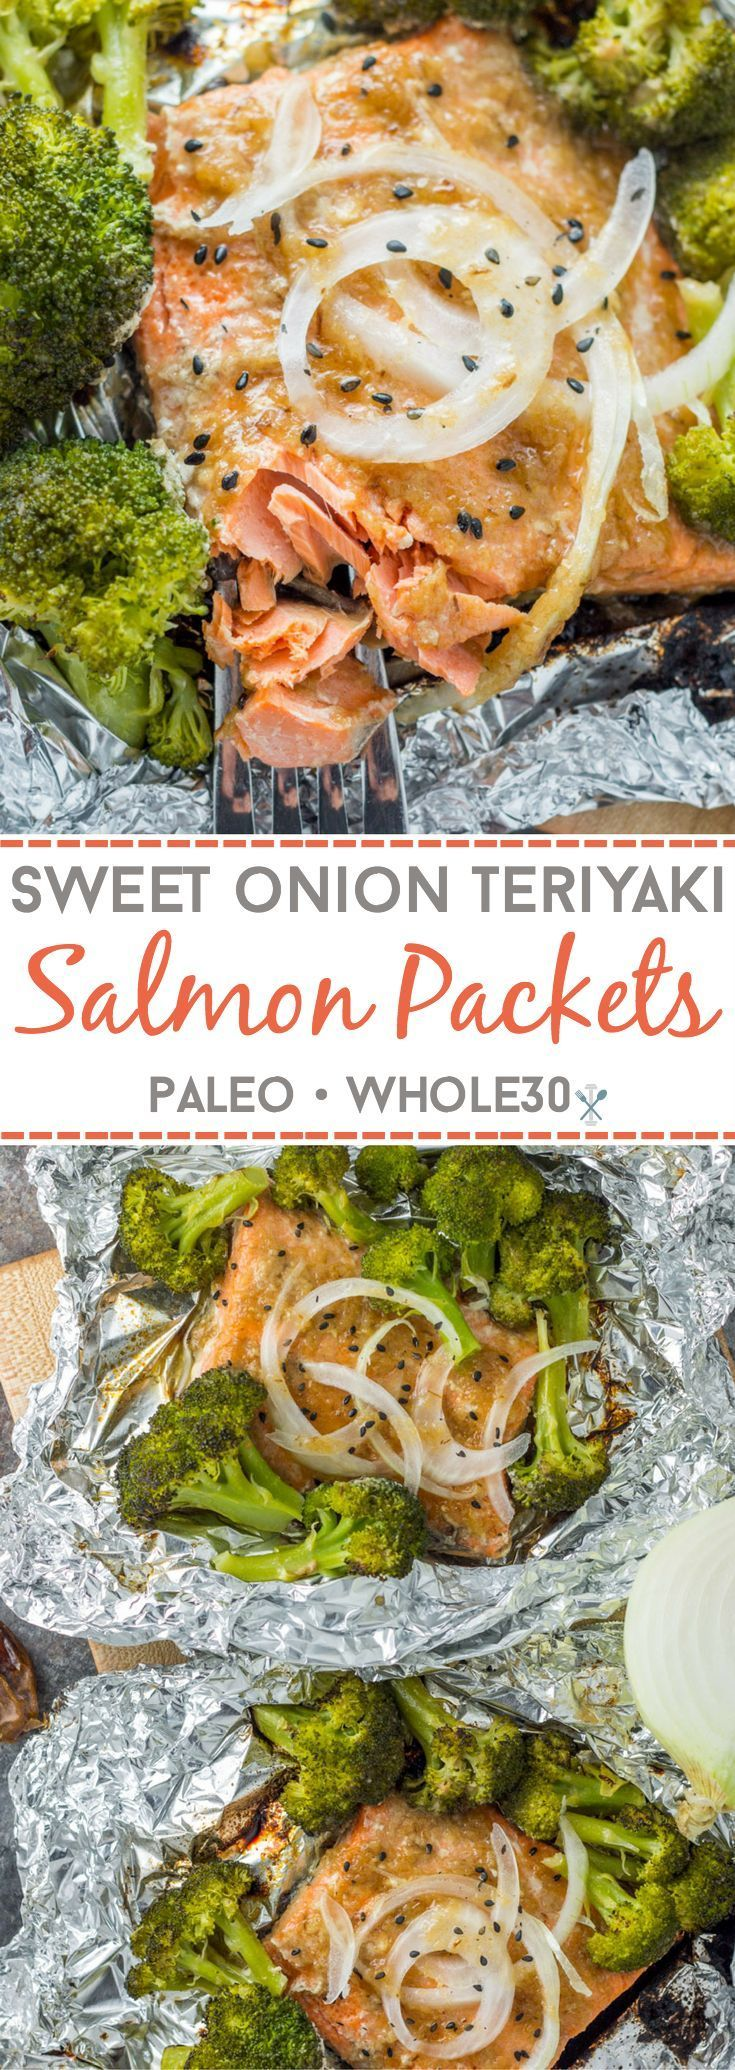 This whole30 compliant, paleo salmon dinner can be made in the oven or on the grill! Sweet onion teriyaki marinated salmon with roasted broccoli for a simple dinner in foil!